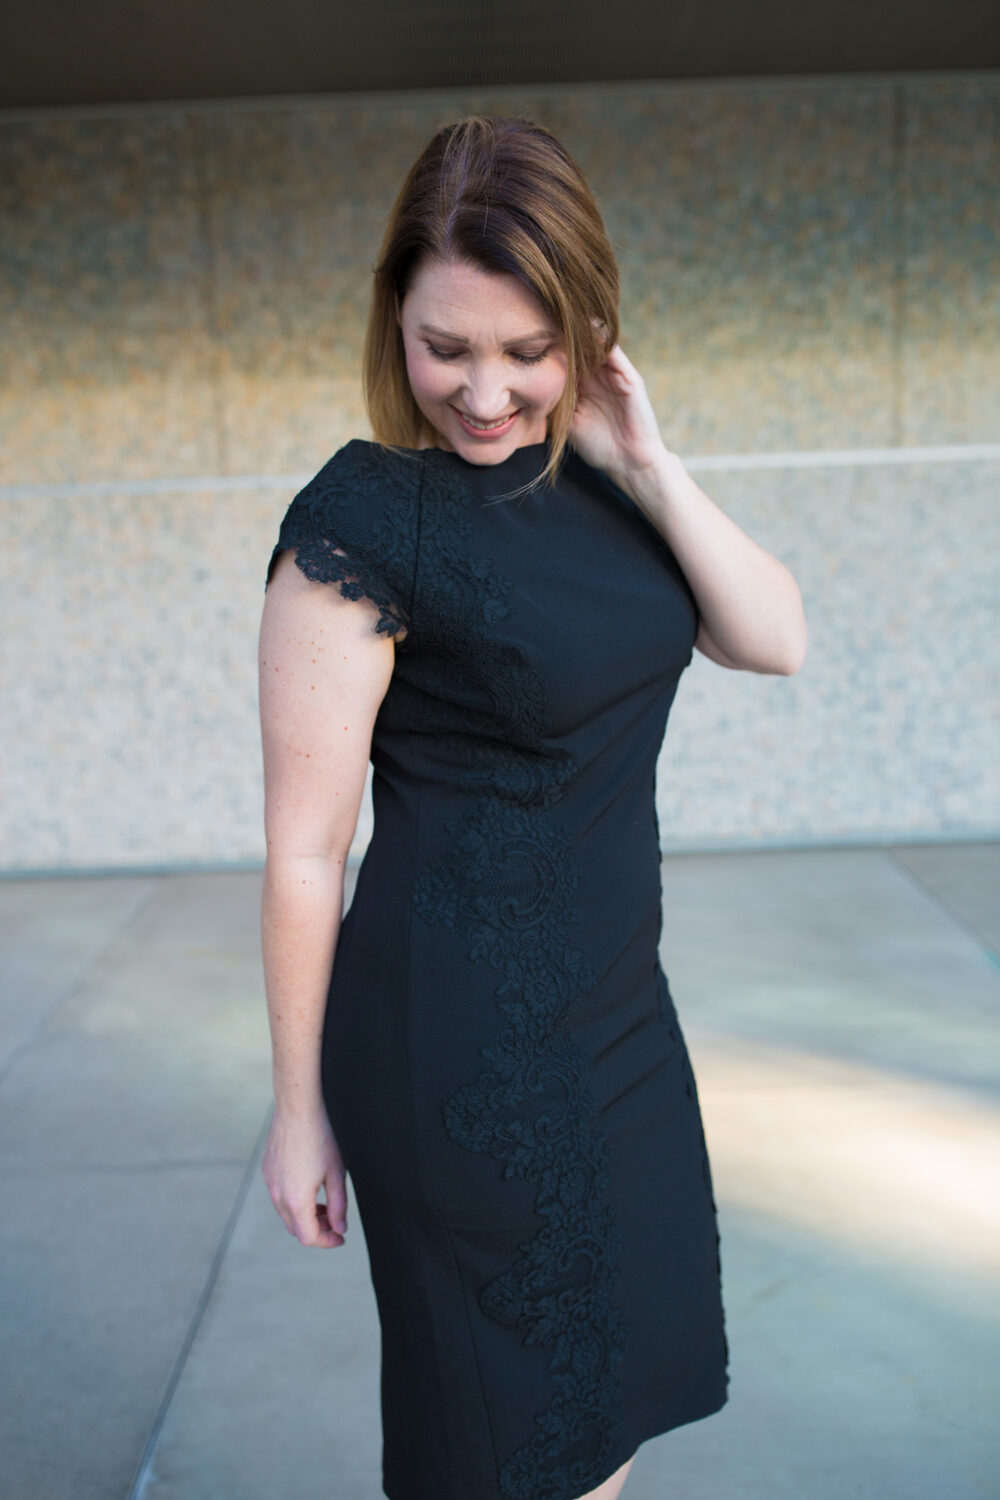 Looking for a black lace dress? This one is the perfect Valentine's Day Outfit or Date Night Outfit!